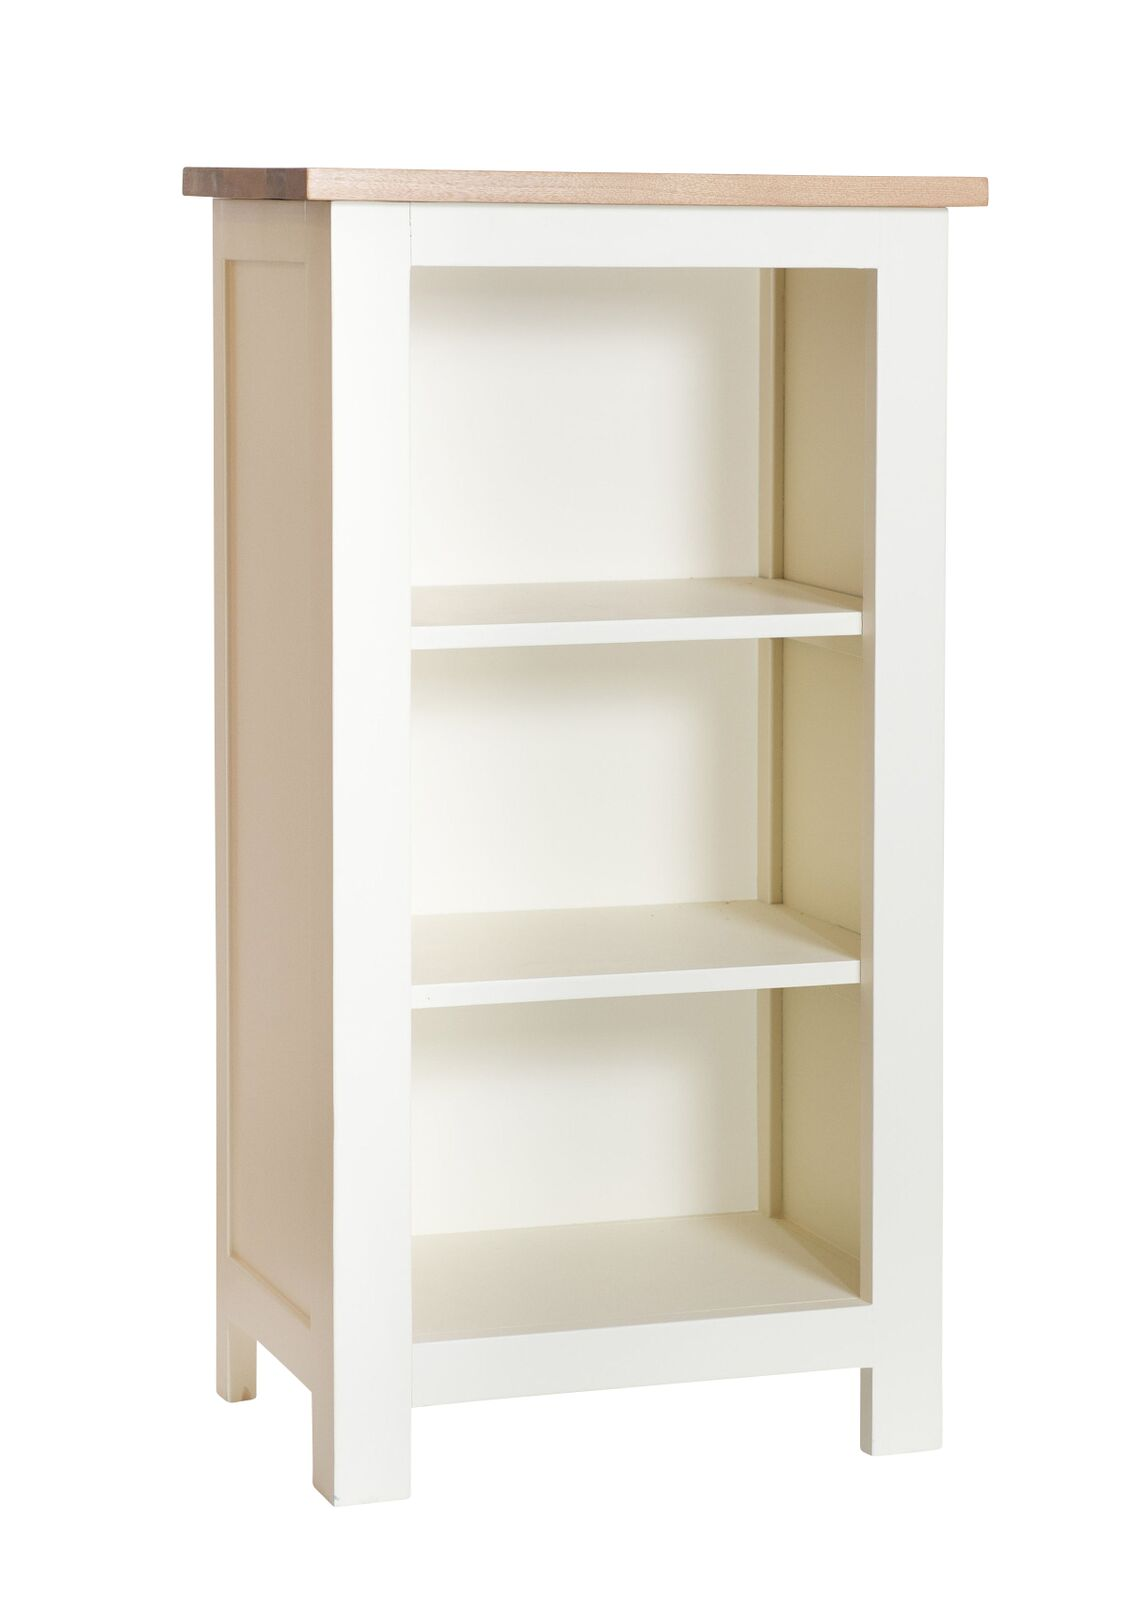 Simply Oak in Cream Small Bookcase